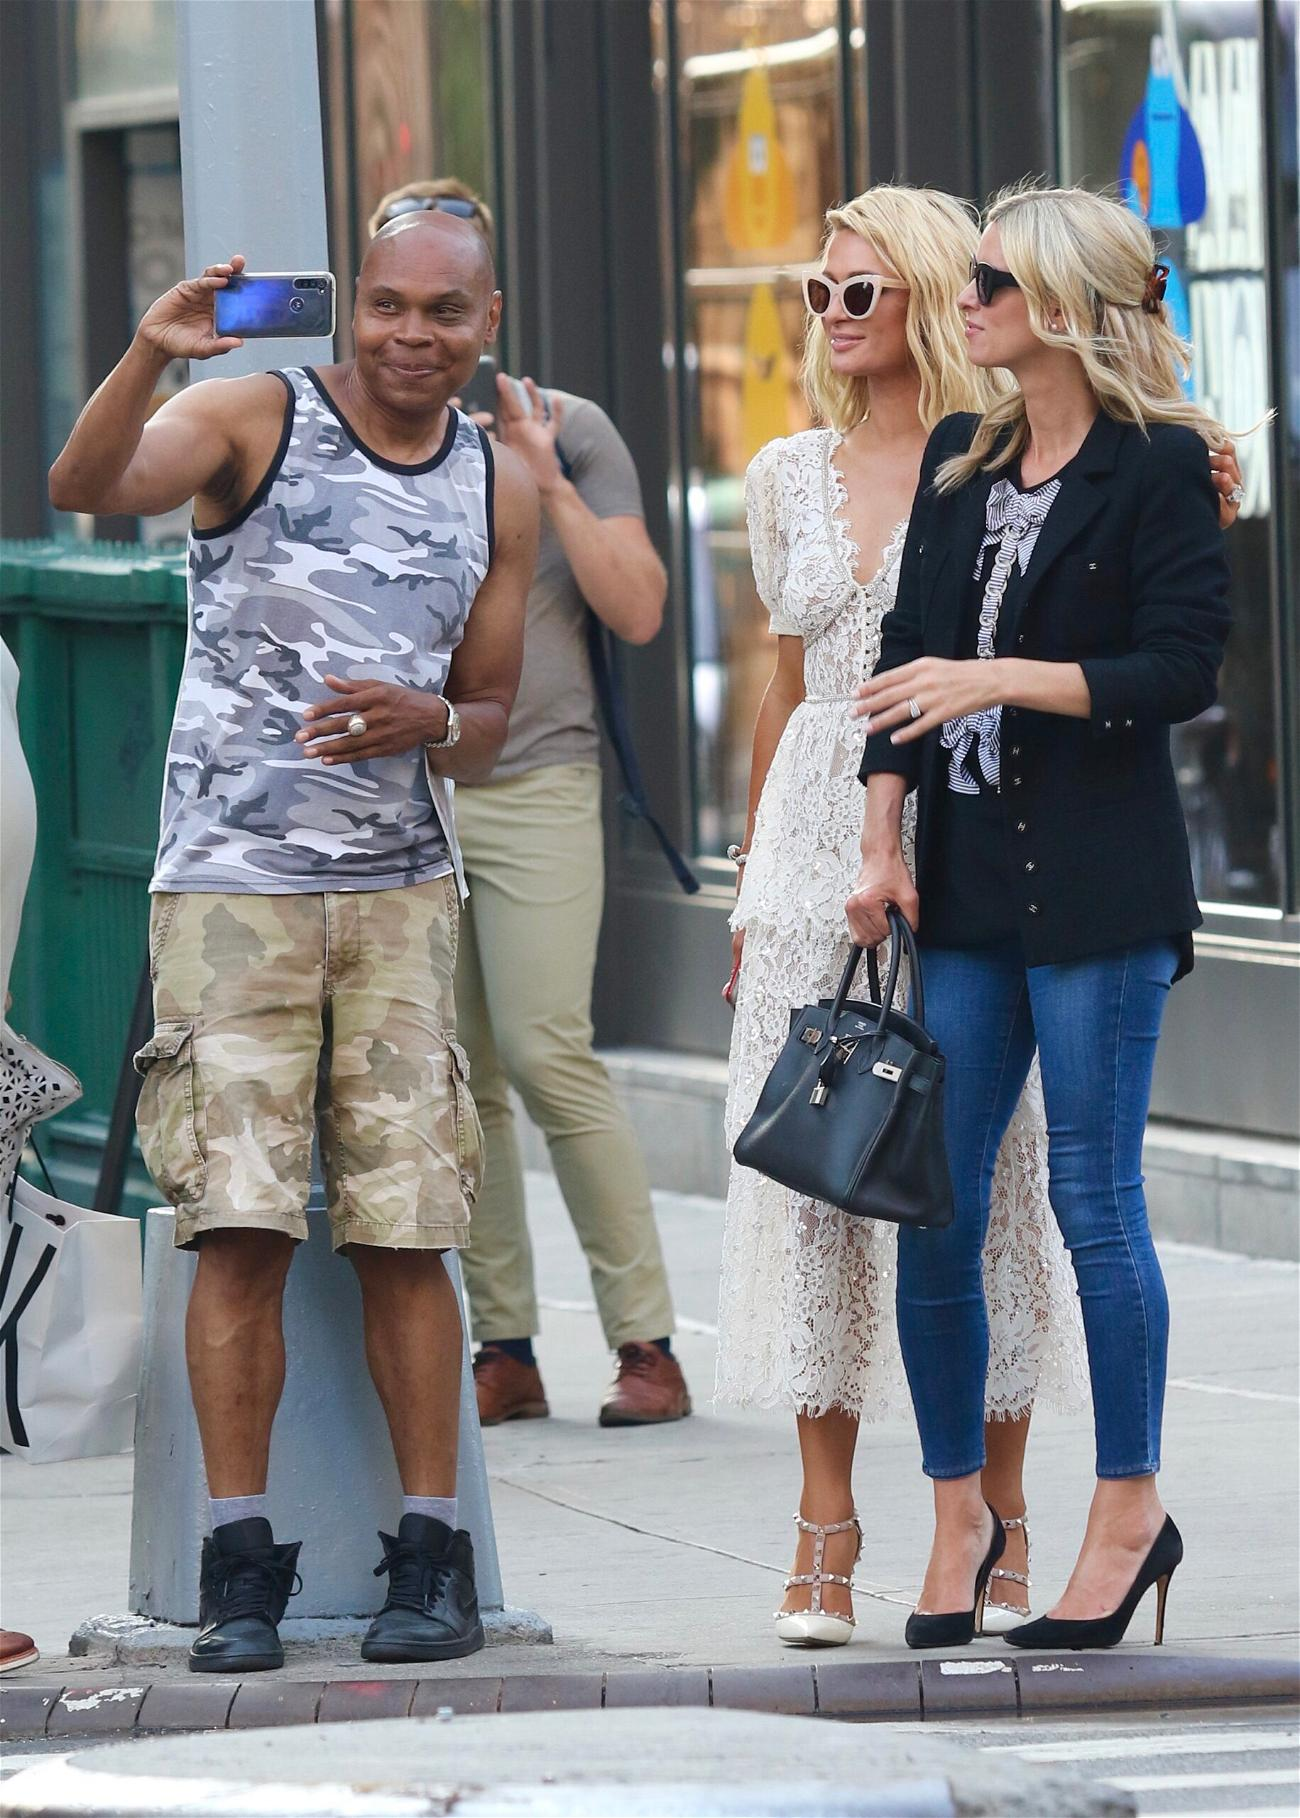 Paris and Nicky Hilton pose with fans.